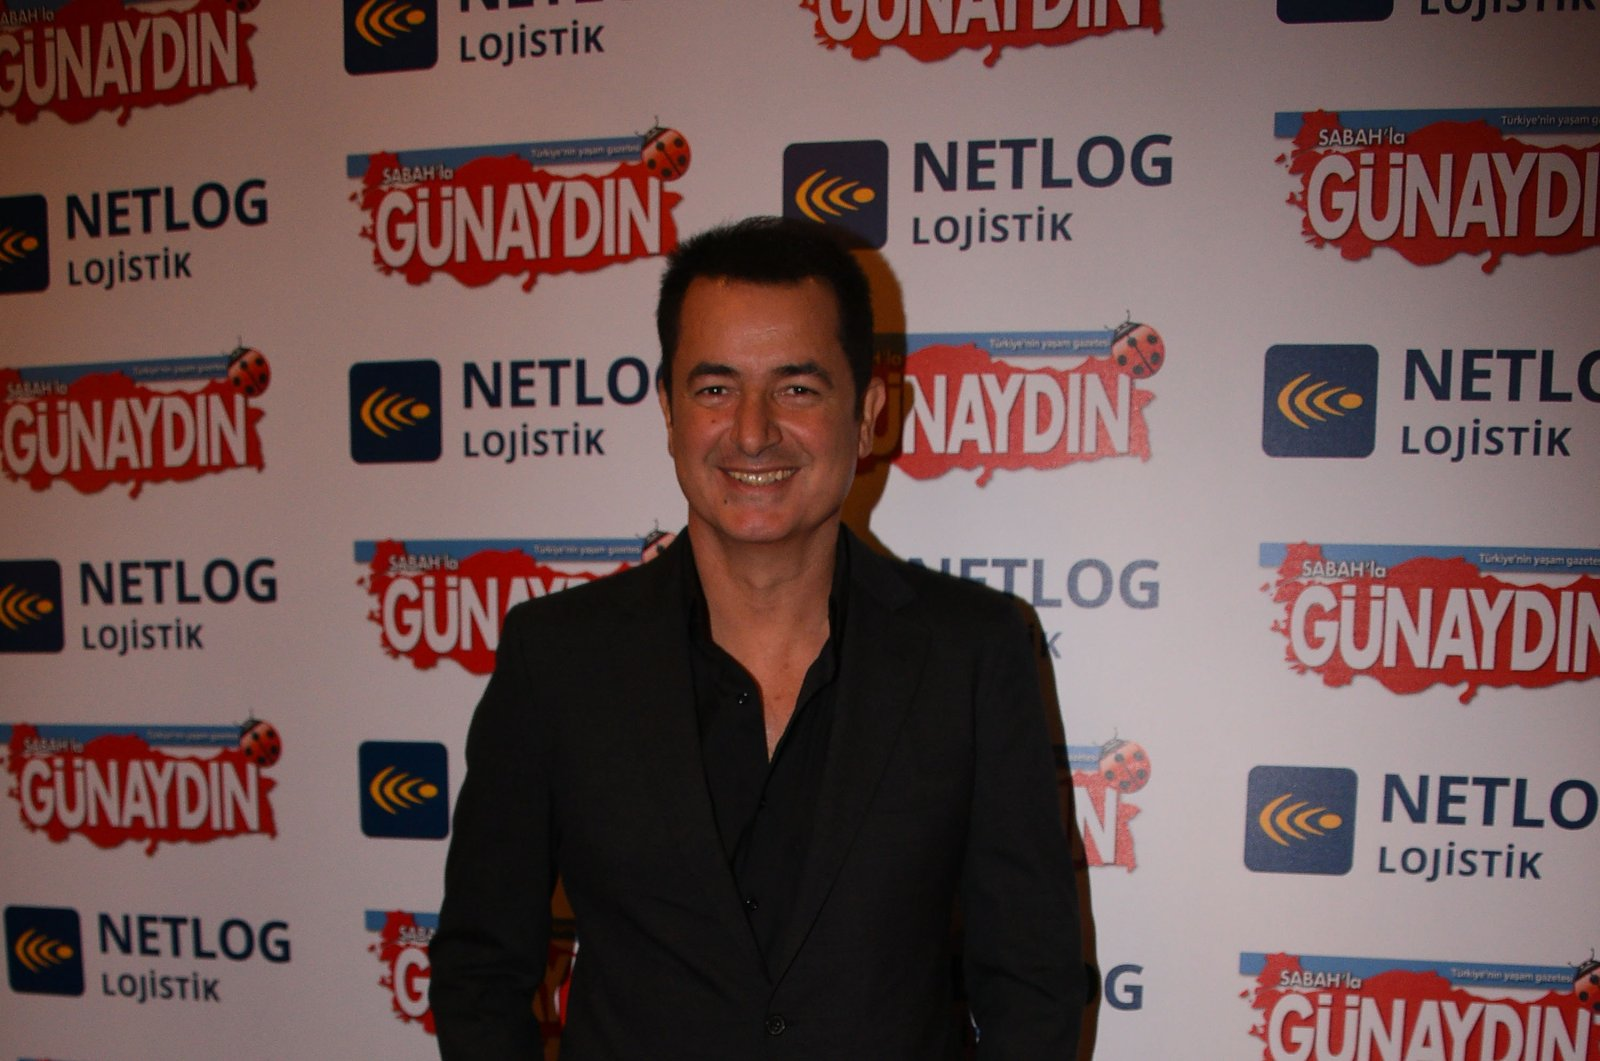 Turkish media magnate Acun Ilıcalı poses at the entrance of an event in Istanbul, Dec. 19, 2018. (Sabah File Photo)